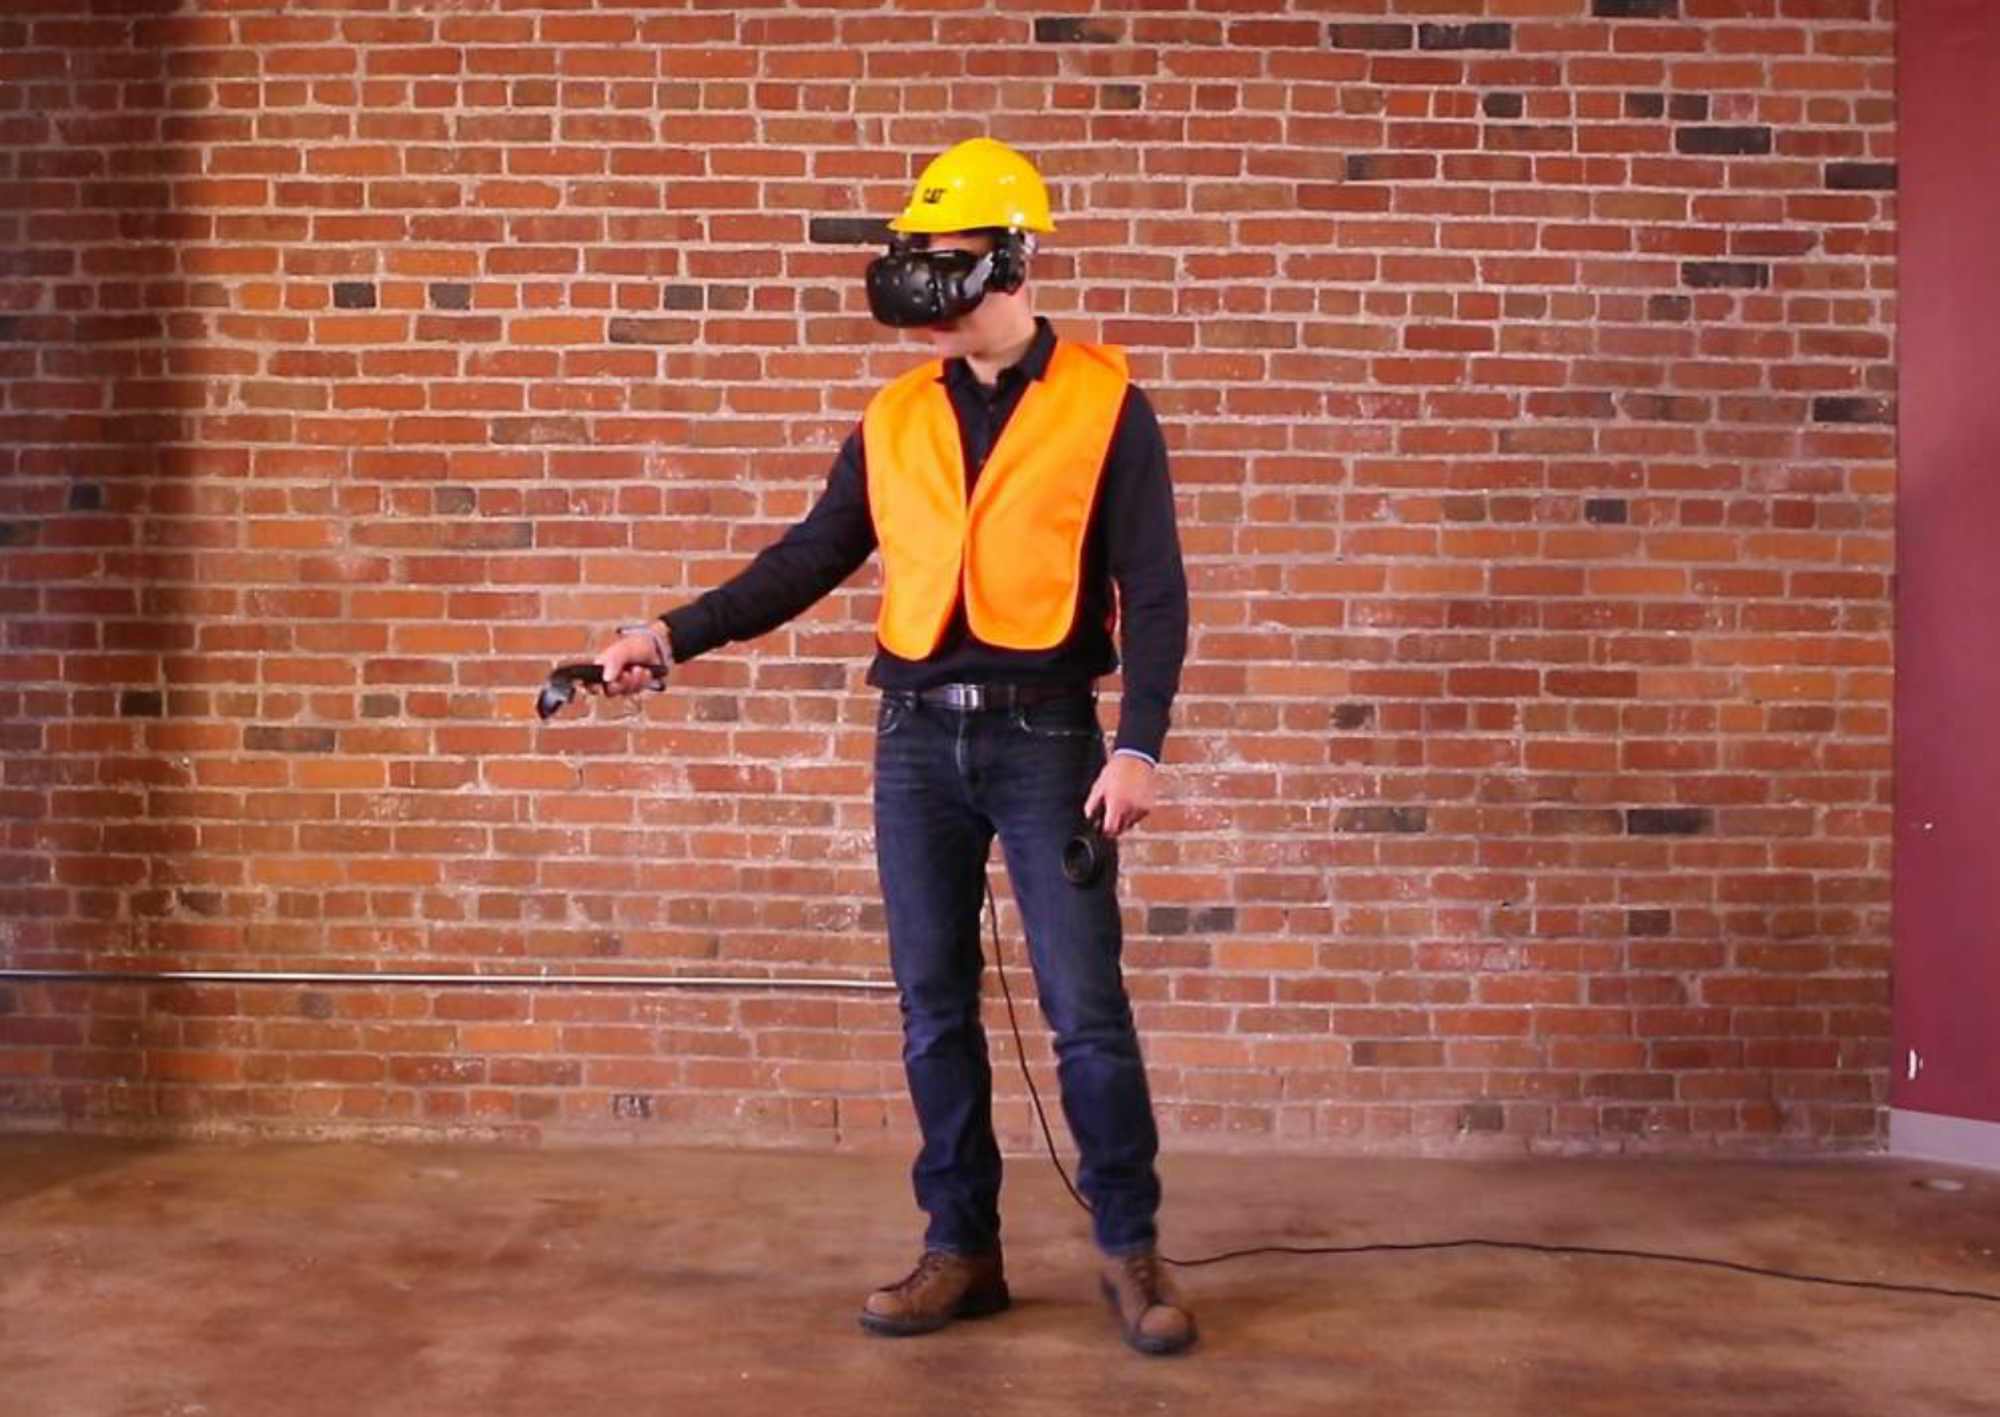 Cat's VR safety training experience requires the user to wear a VR headset, seen here.